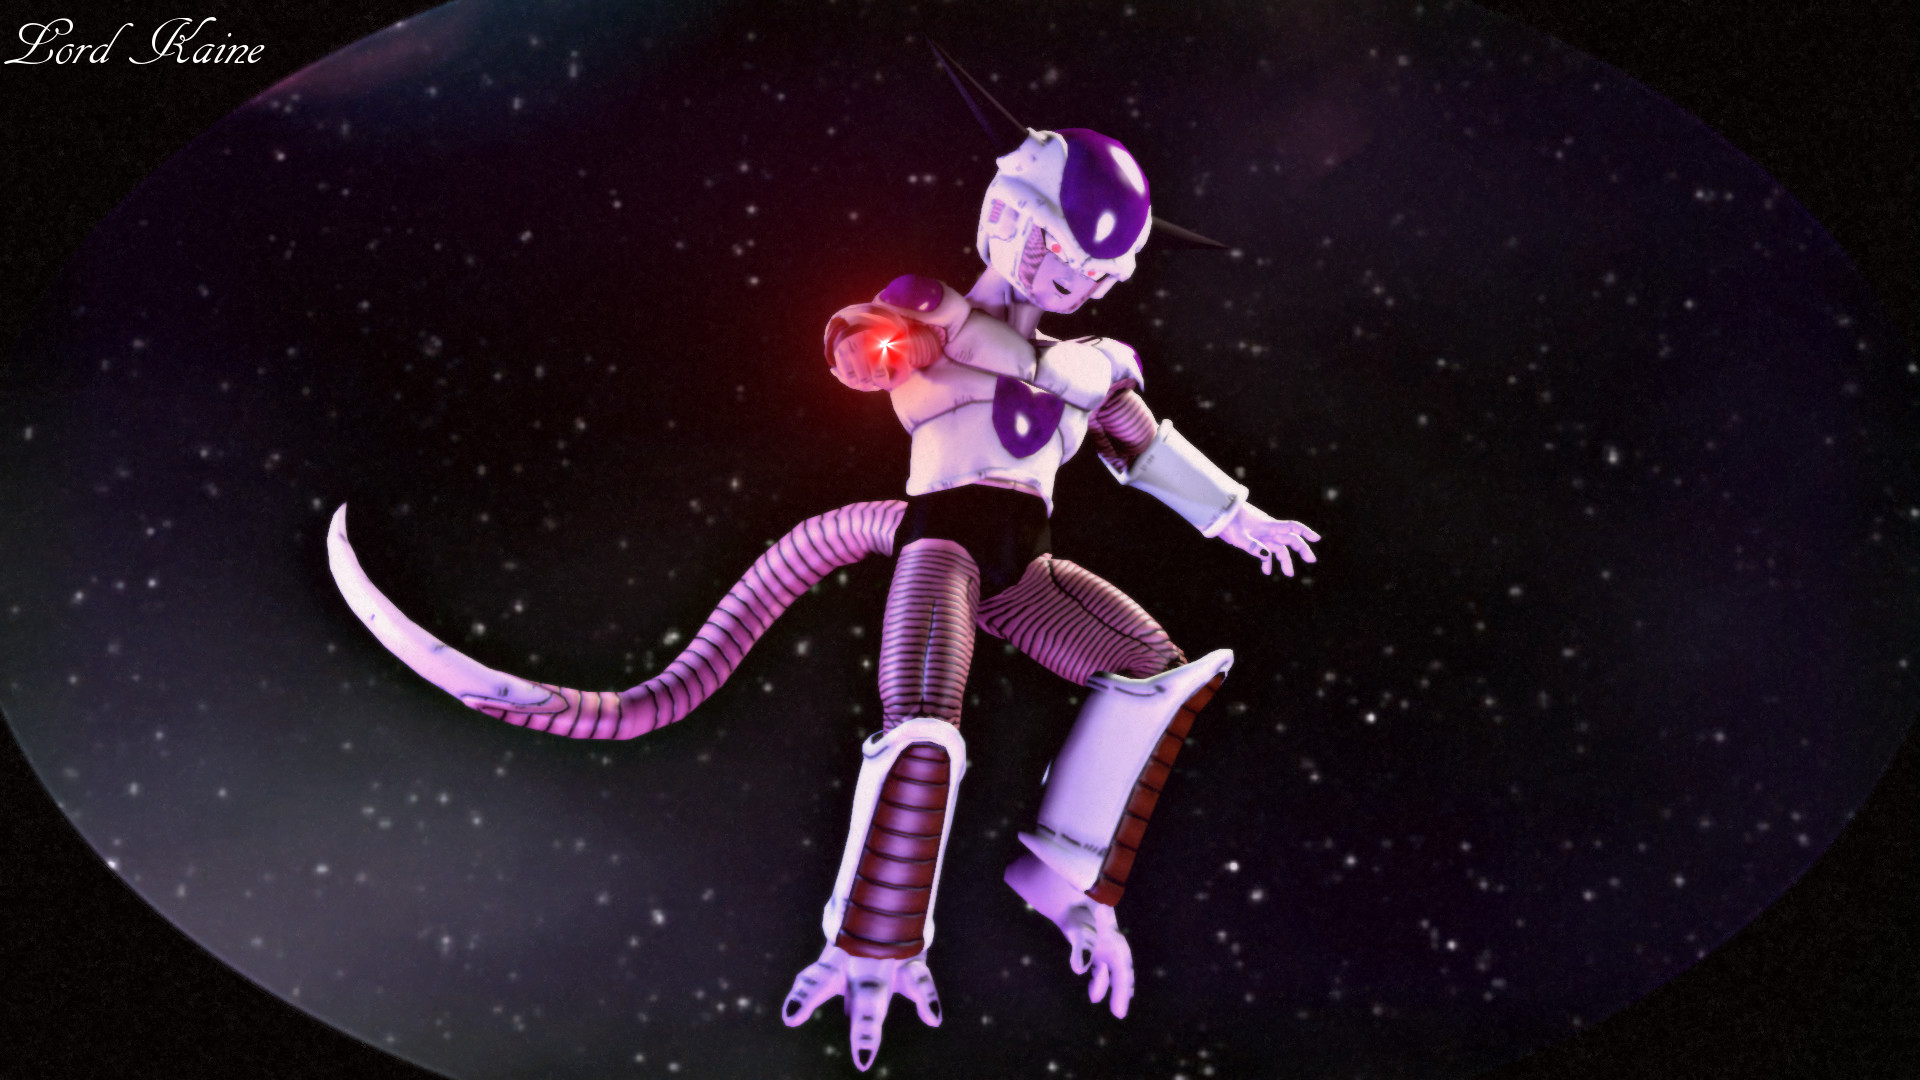 … Frieza SFM Wallpaper (First Form) by Lord-Kaine